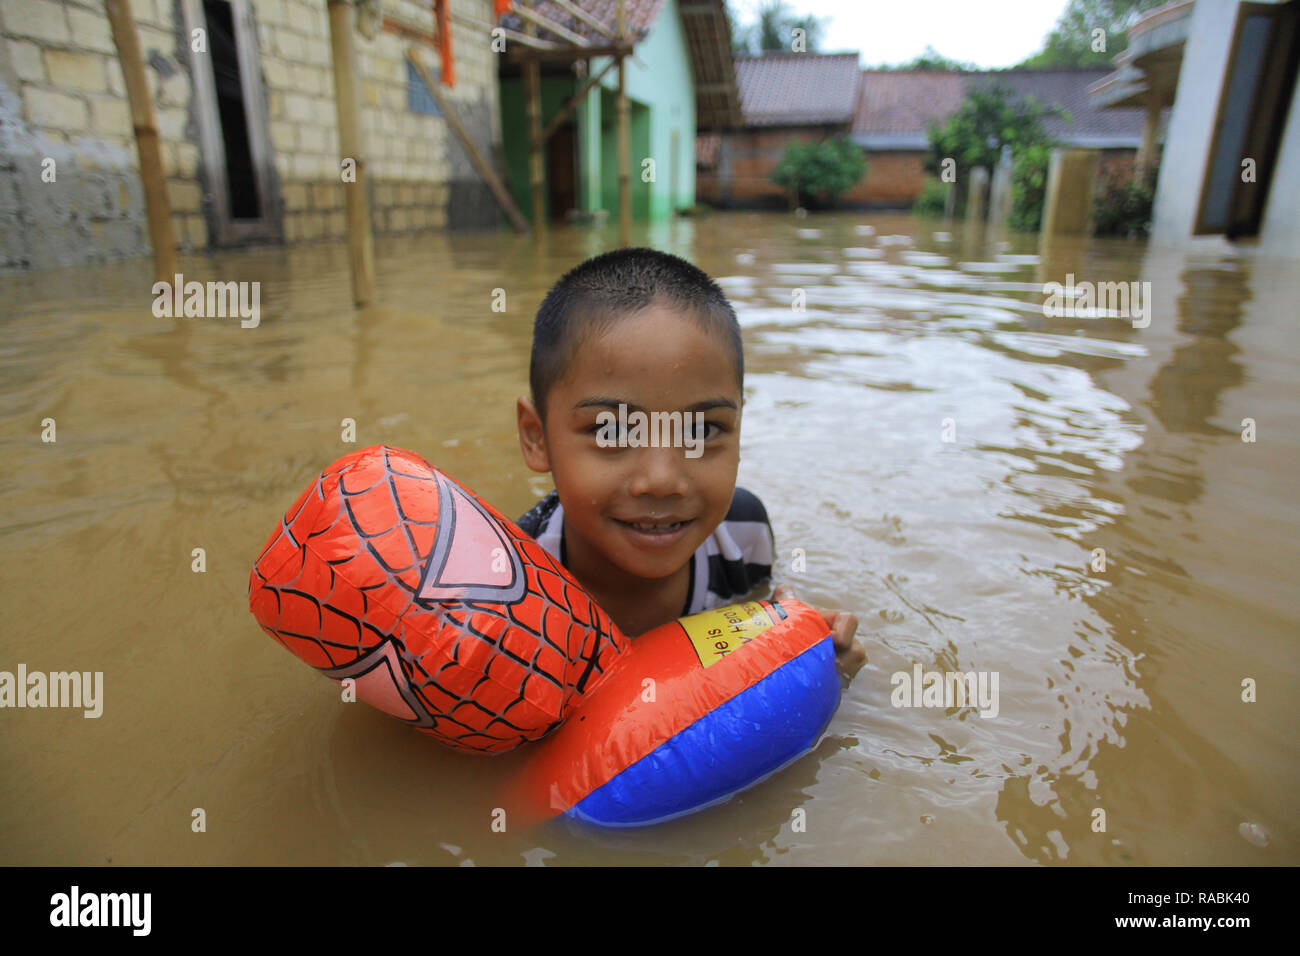 A child seen playing inside the water during a flood. Dozens of residents were evacuated due to the flood disaster that hit village Rancamaya Cikobak RT 03/04, Rancamaya, Bogor City. This flood began to hit dozens of houses in Kampung Rancamaya Cikobak due to the flow of the Cisadane tributary, the Cimakaci River overflowing. - Stock Image